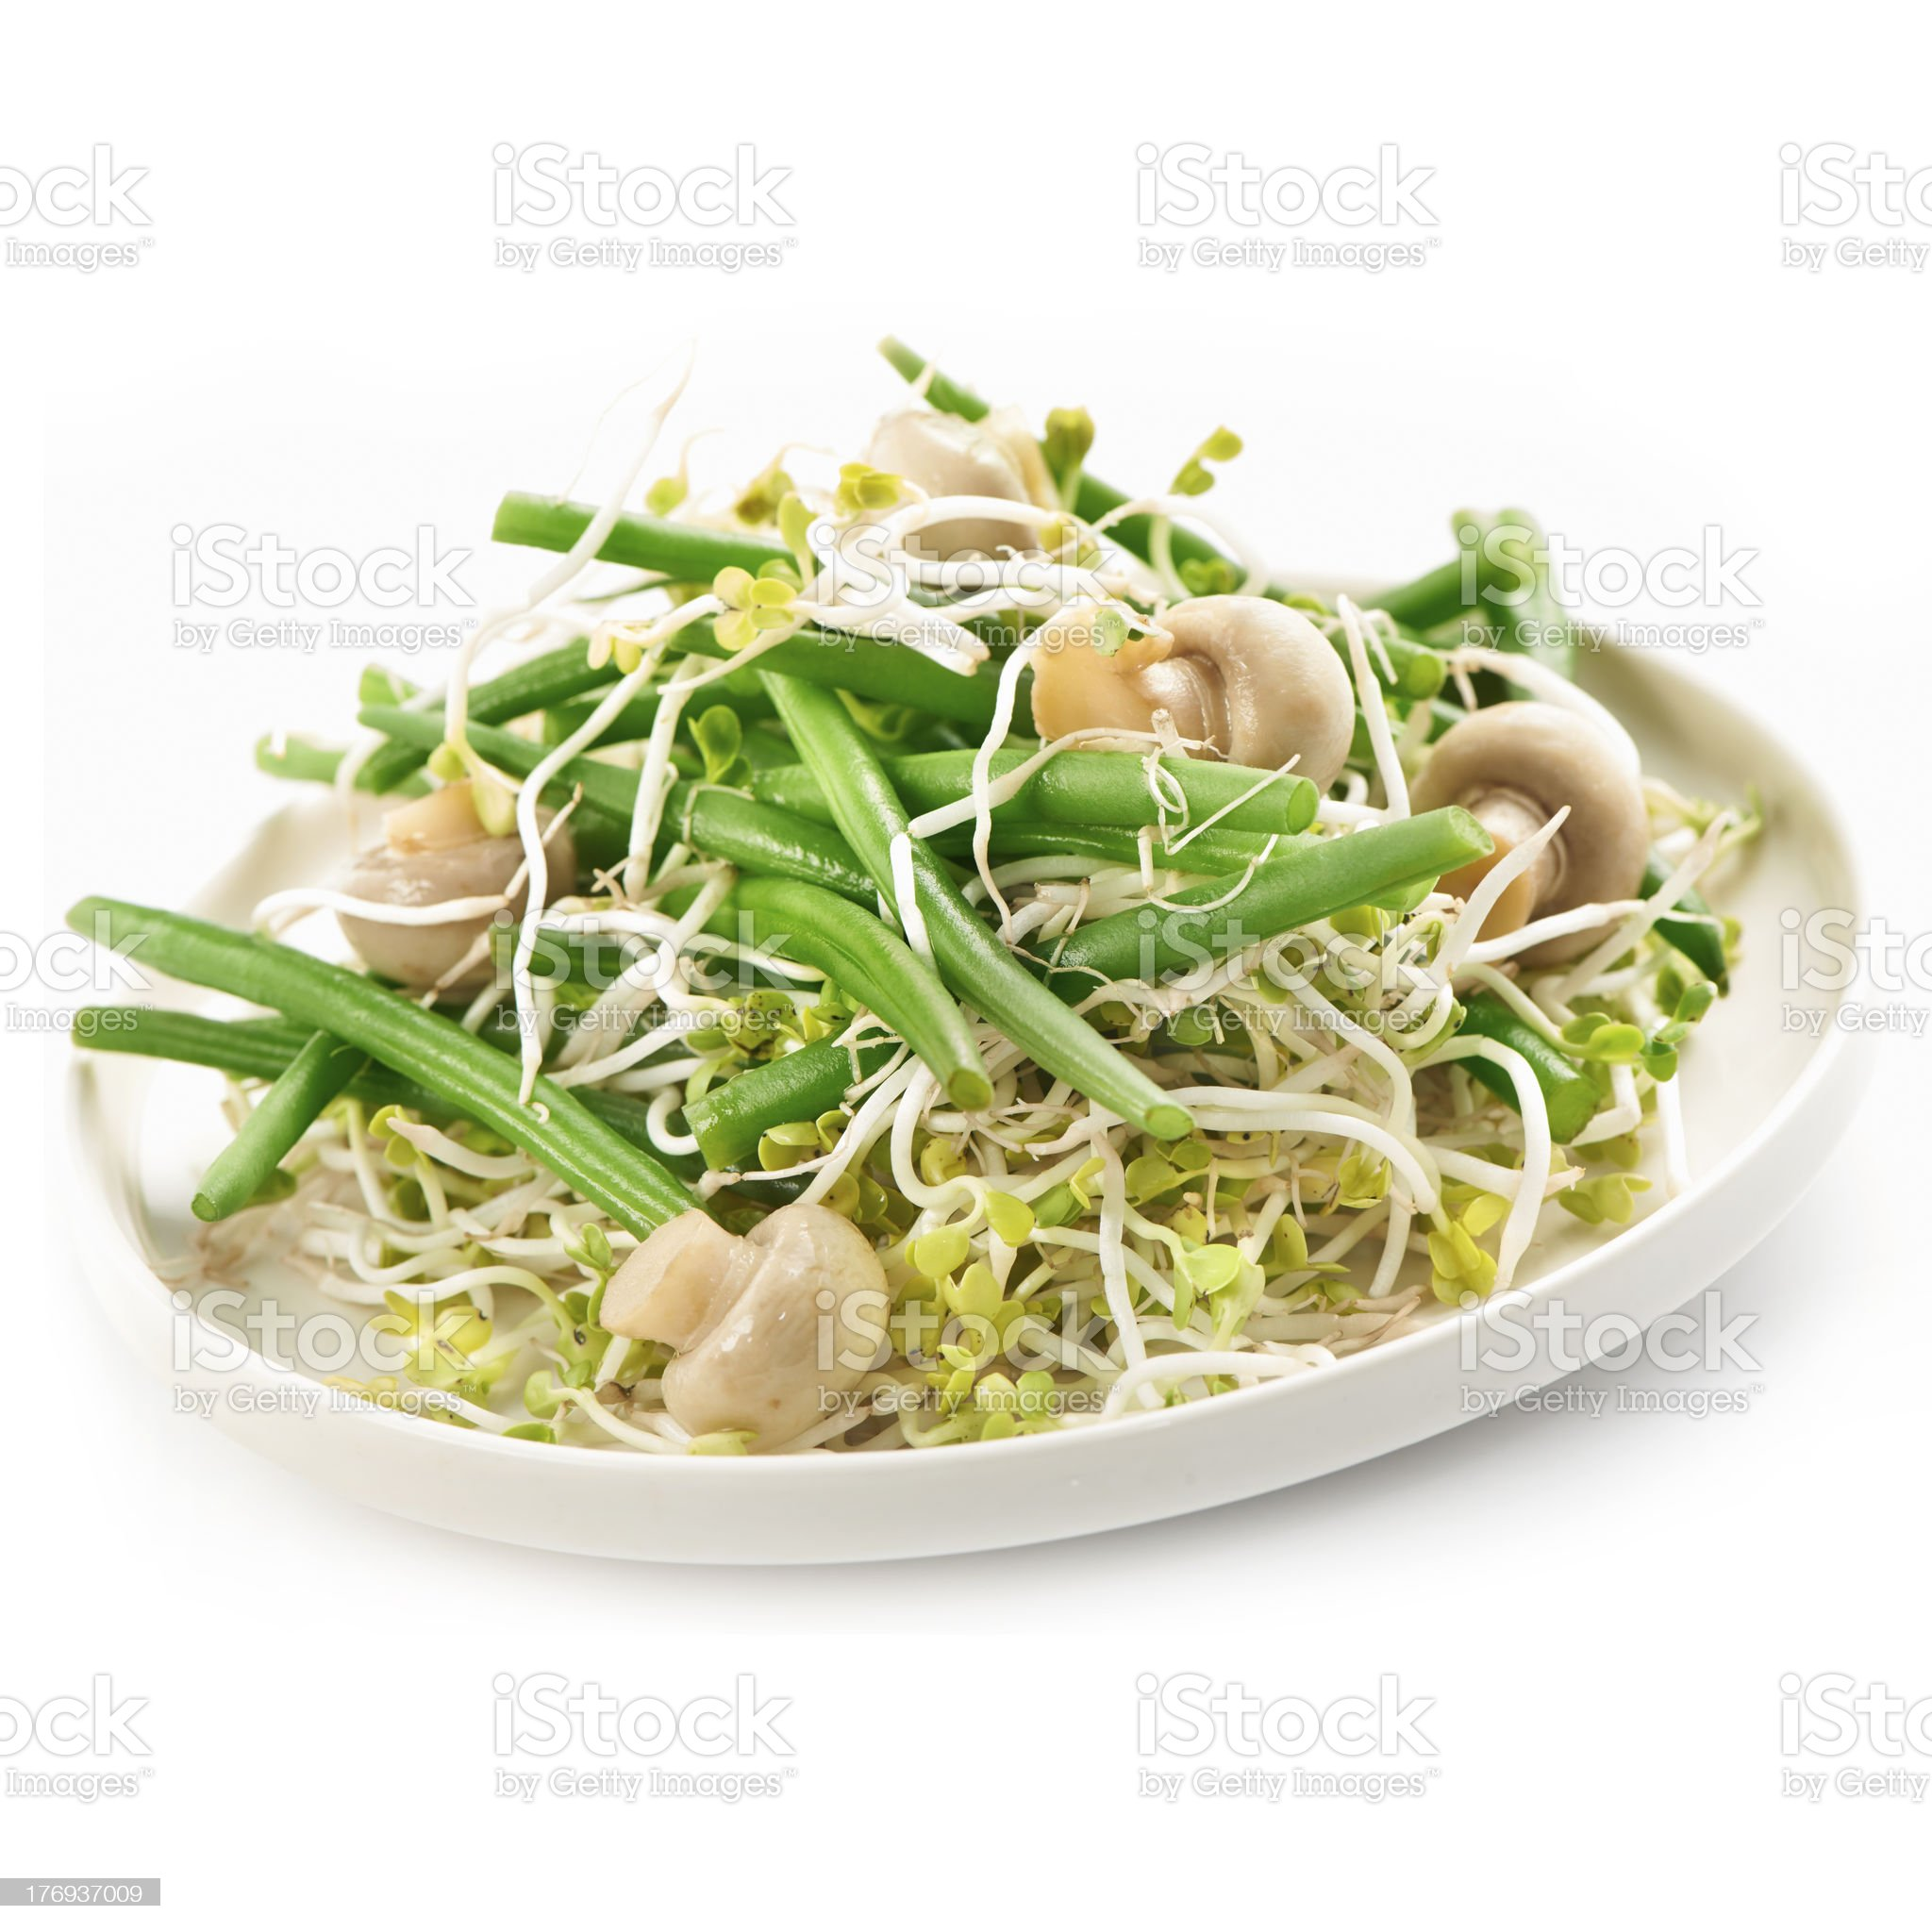 bean salad with radish sprout and mushrooms royalty-free stock photo